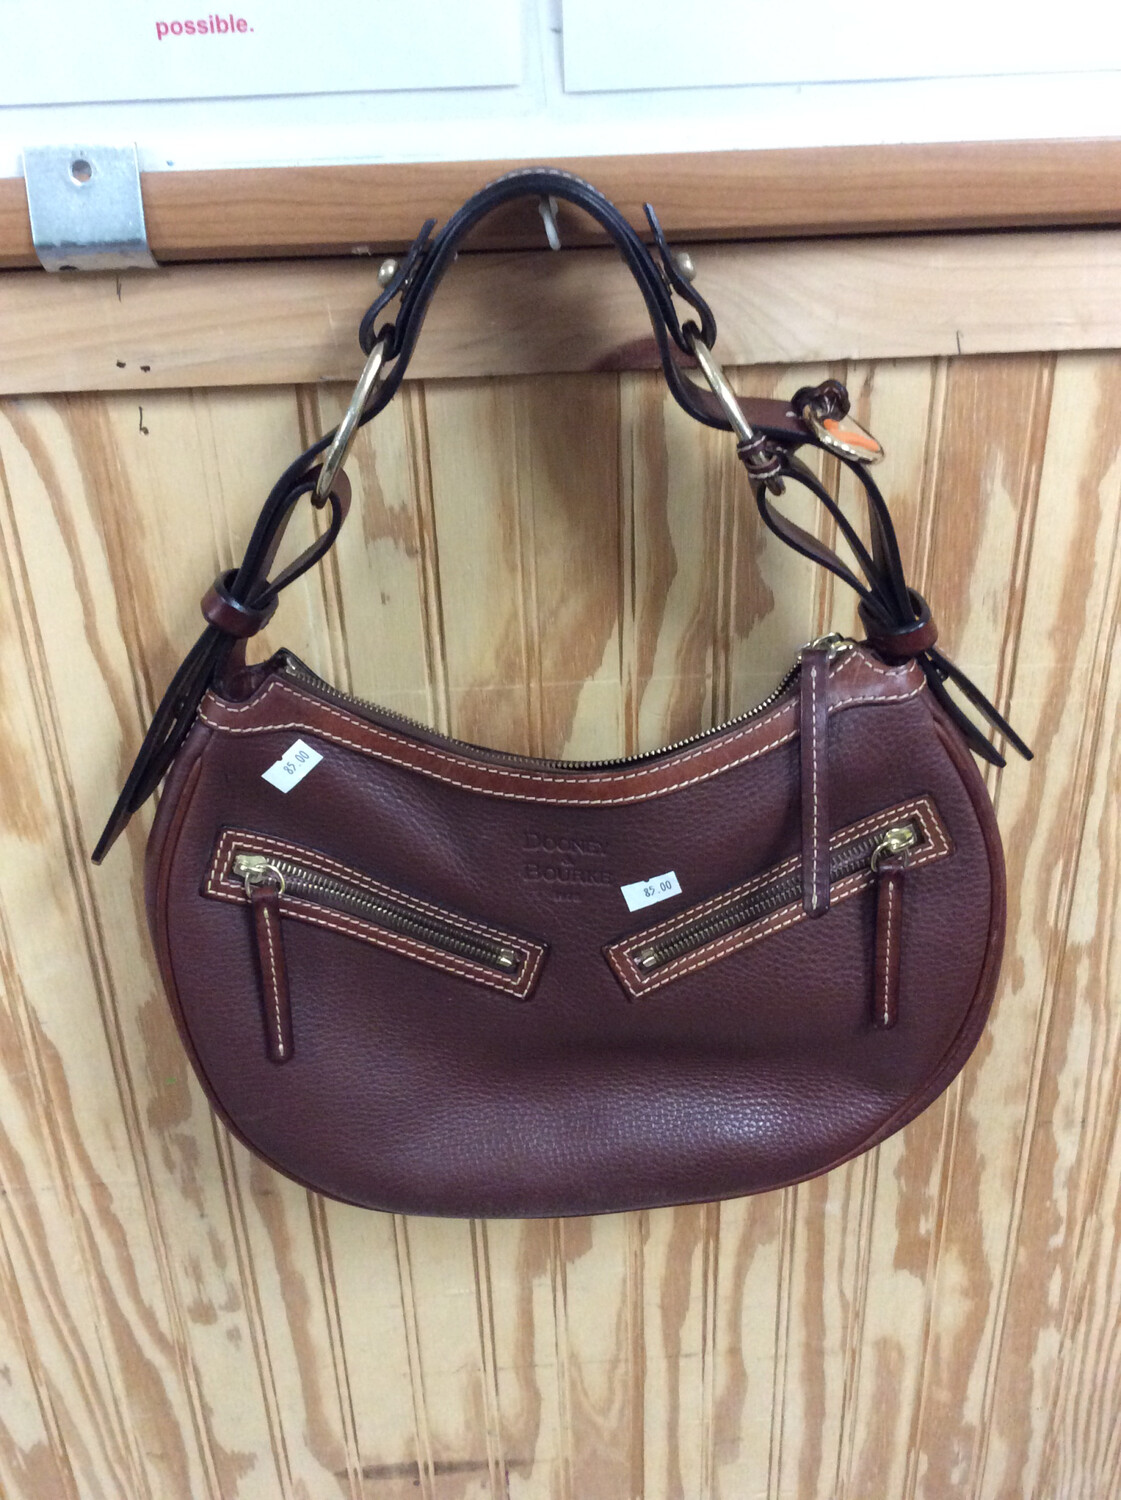 Dooney and Bourke Brown Leather Purse